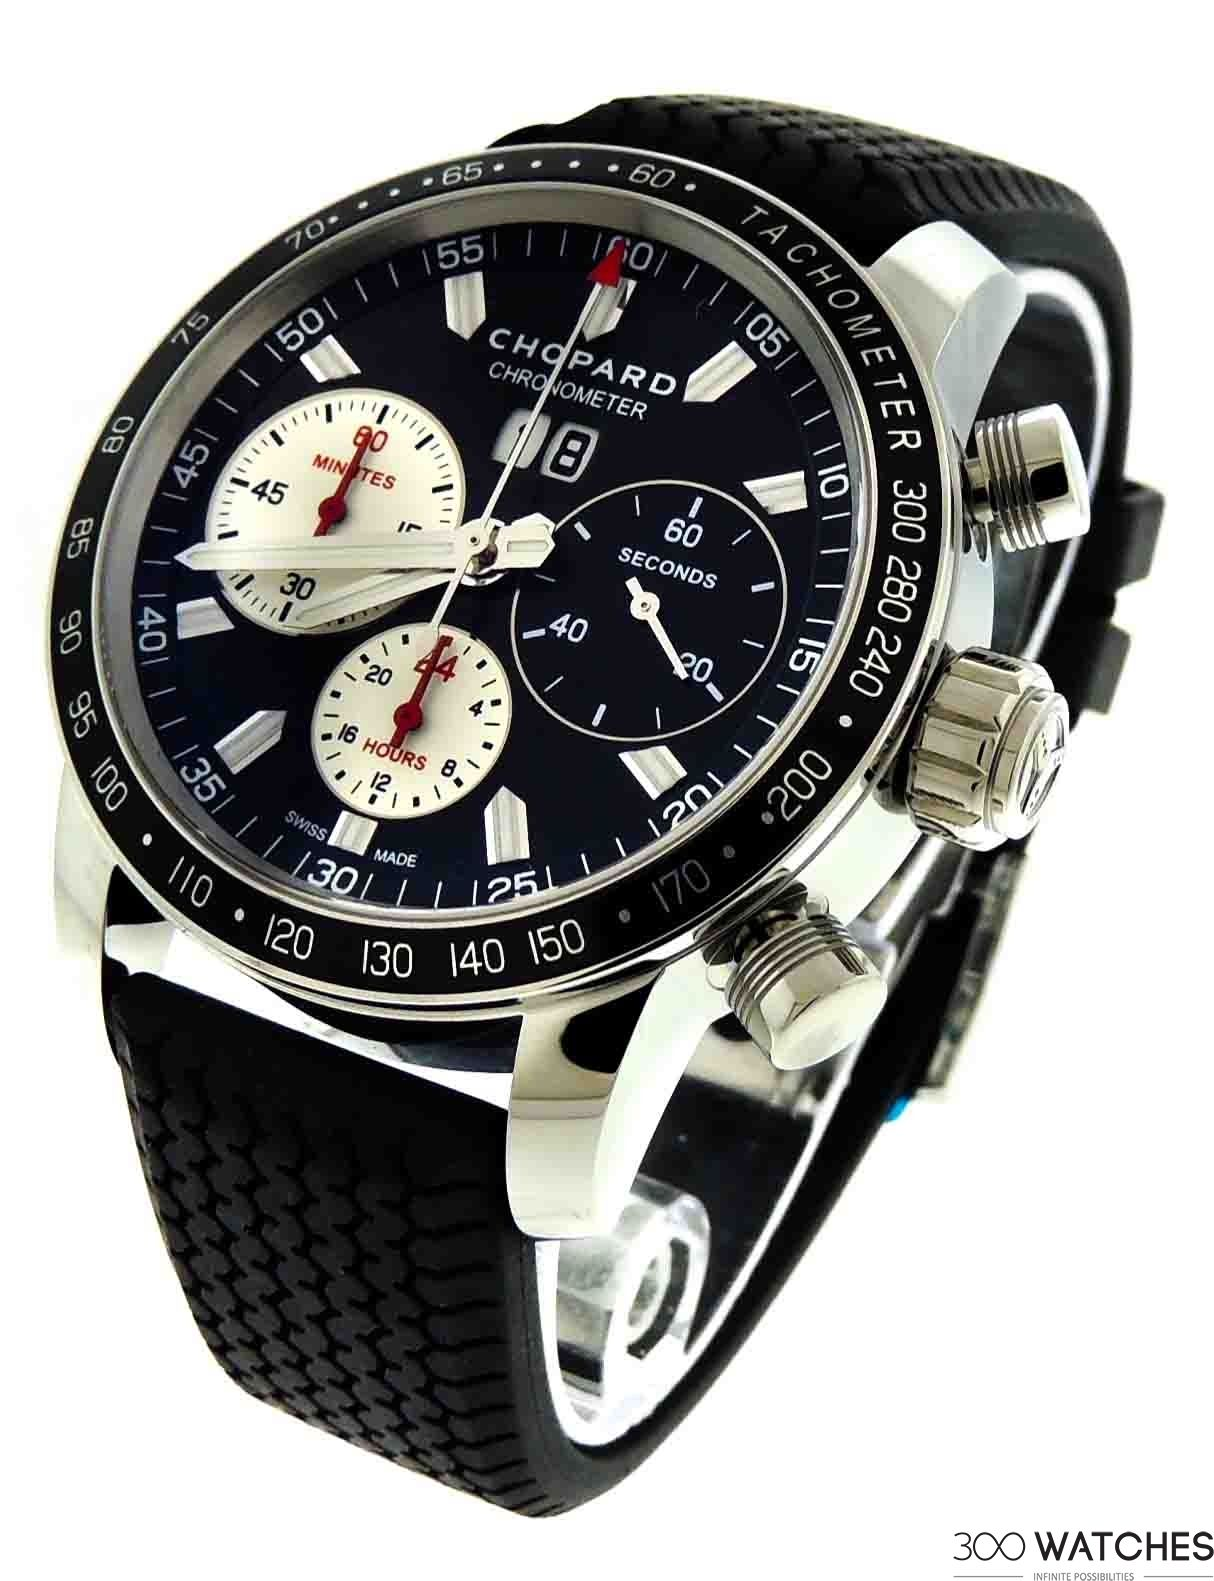 Chopard Mille Miglia Jacky Ickx Edition V Stainless Steel Automatic    luxury watch brands   300watches ac9ca31579d8